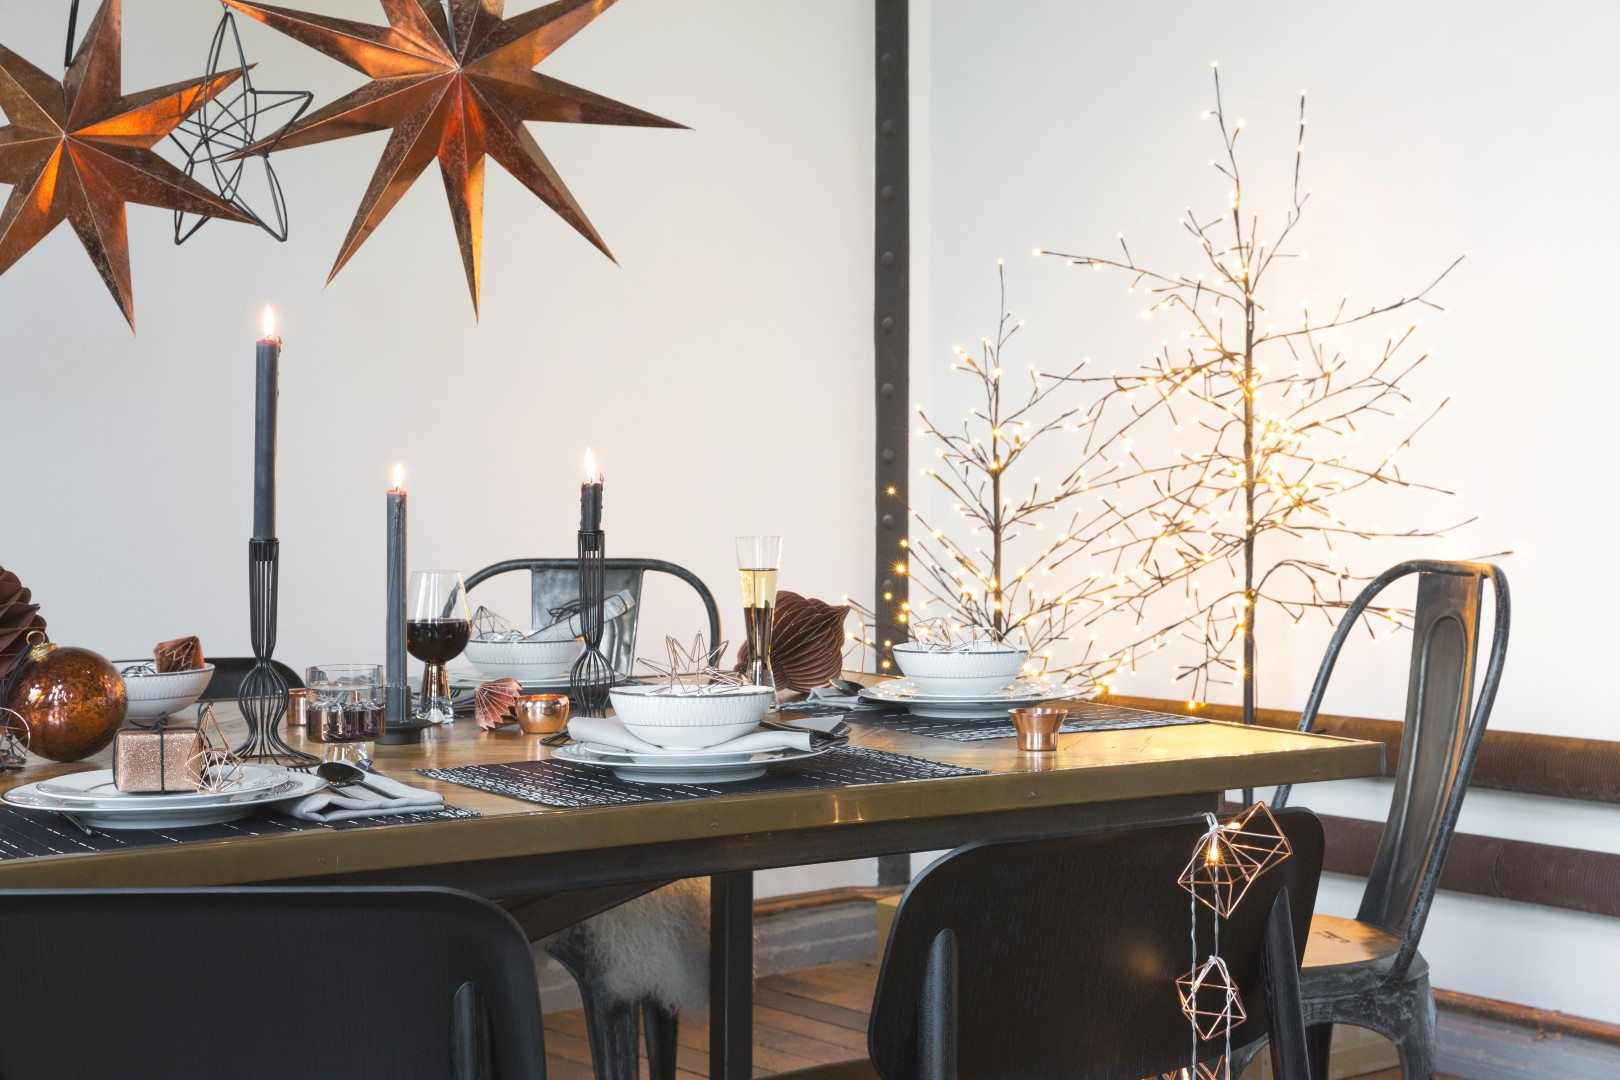 Embrace Industrial Christmas Decorations with the Urban Glow Trend